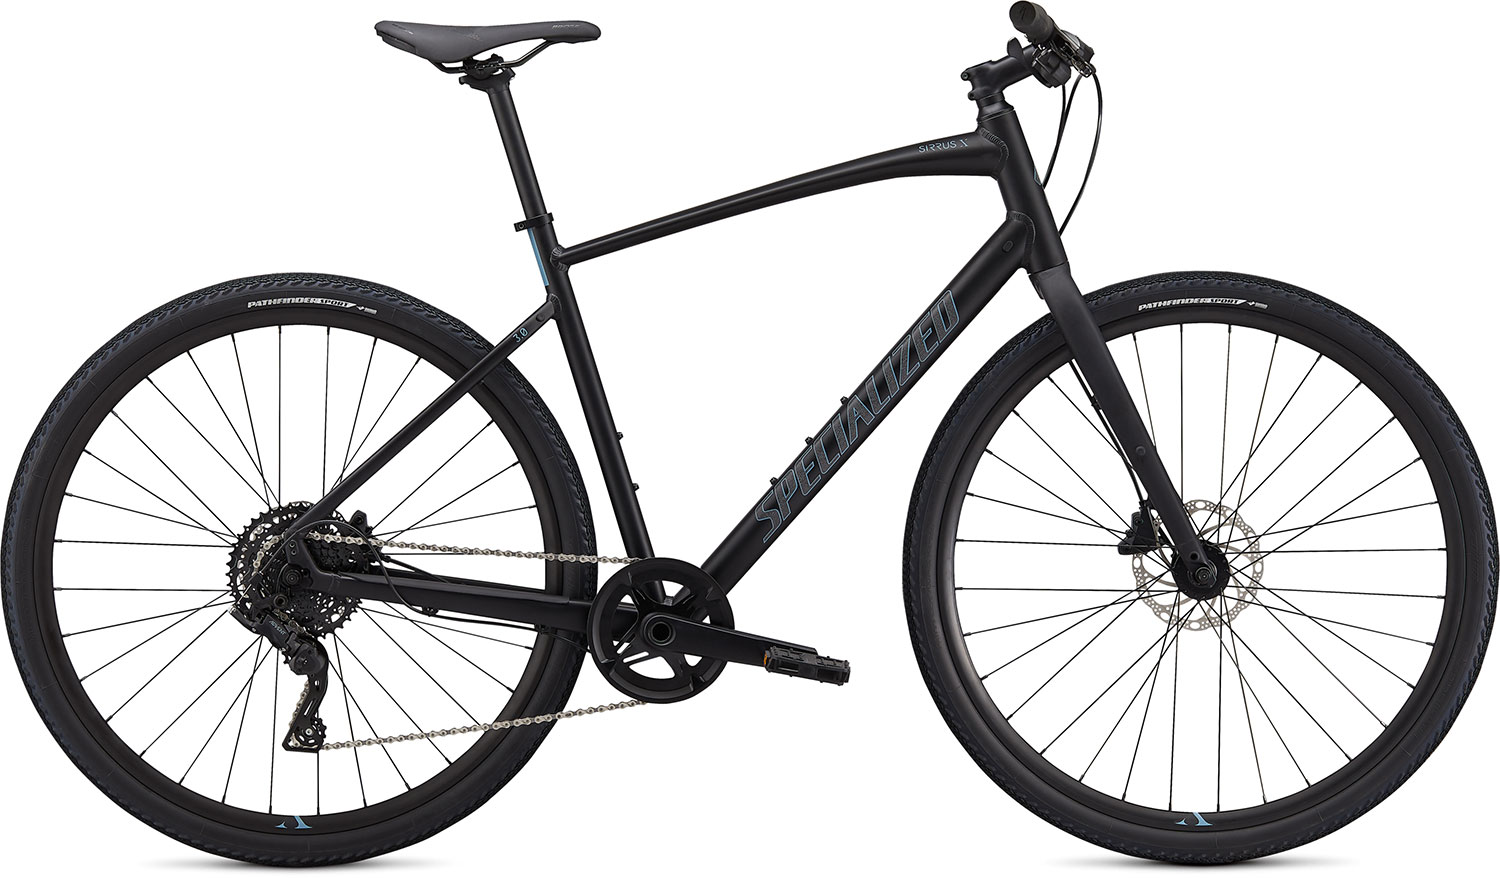 fitness kolo Specialized Sirrus X 3.0 2020 black/ storm gray